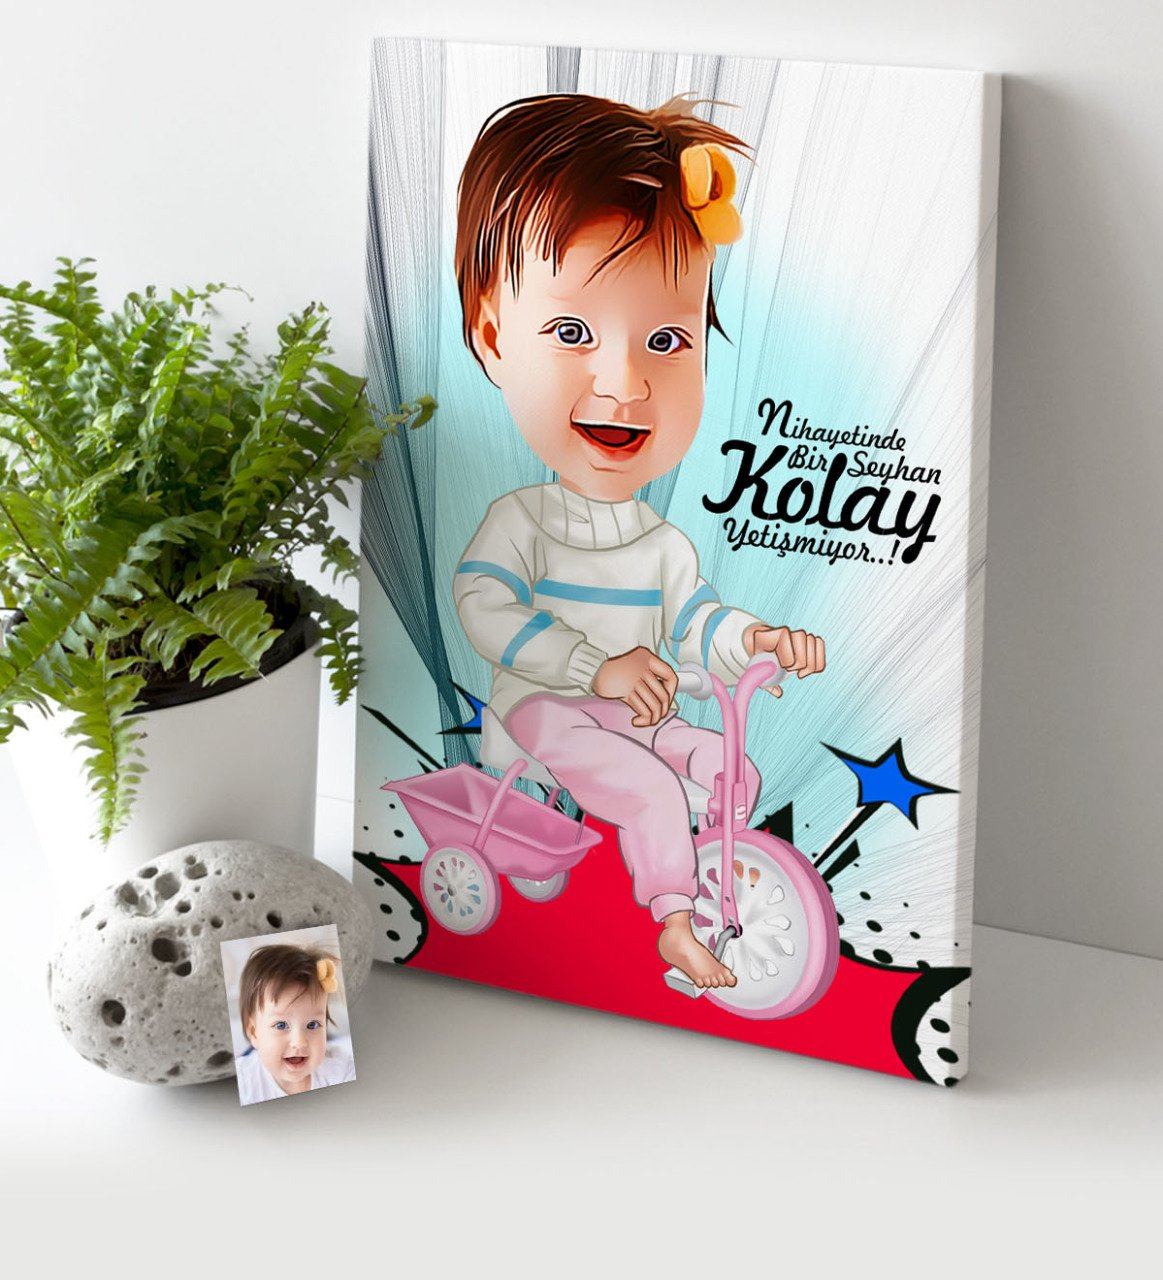 Obliging Personalized Baby Cartoon Canvas Table (30x50 Cm.) 3 Gift Home Decoration Special Design Home Office Business Place Quality Agreeable To Taste